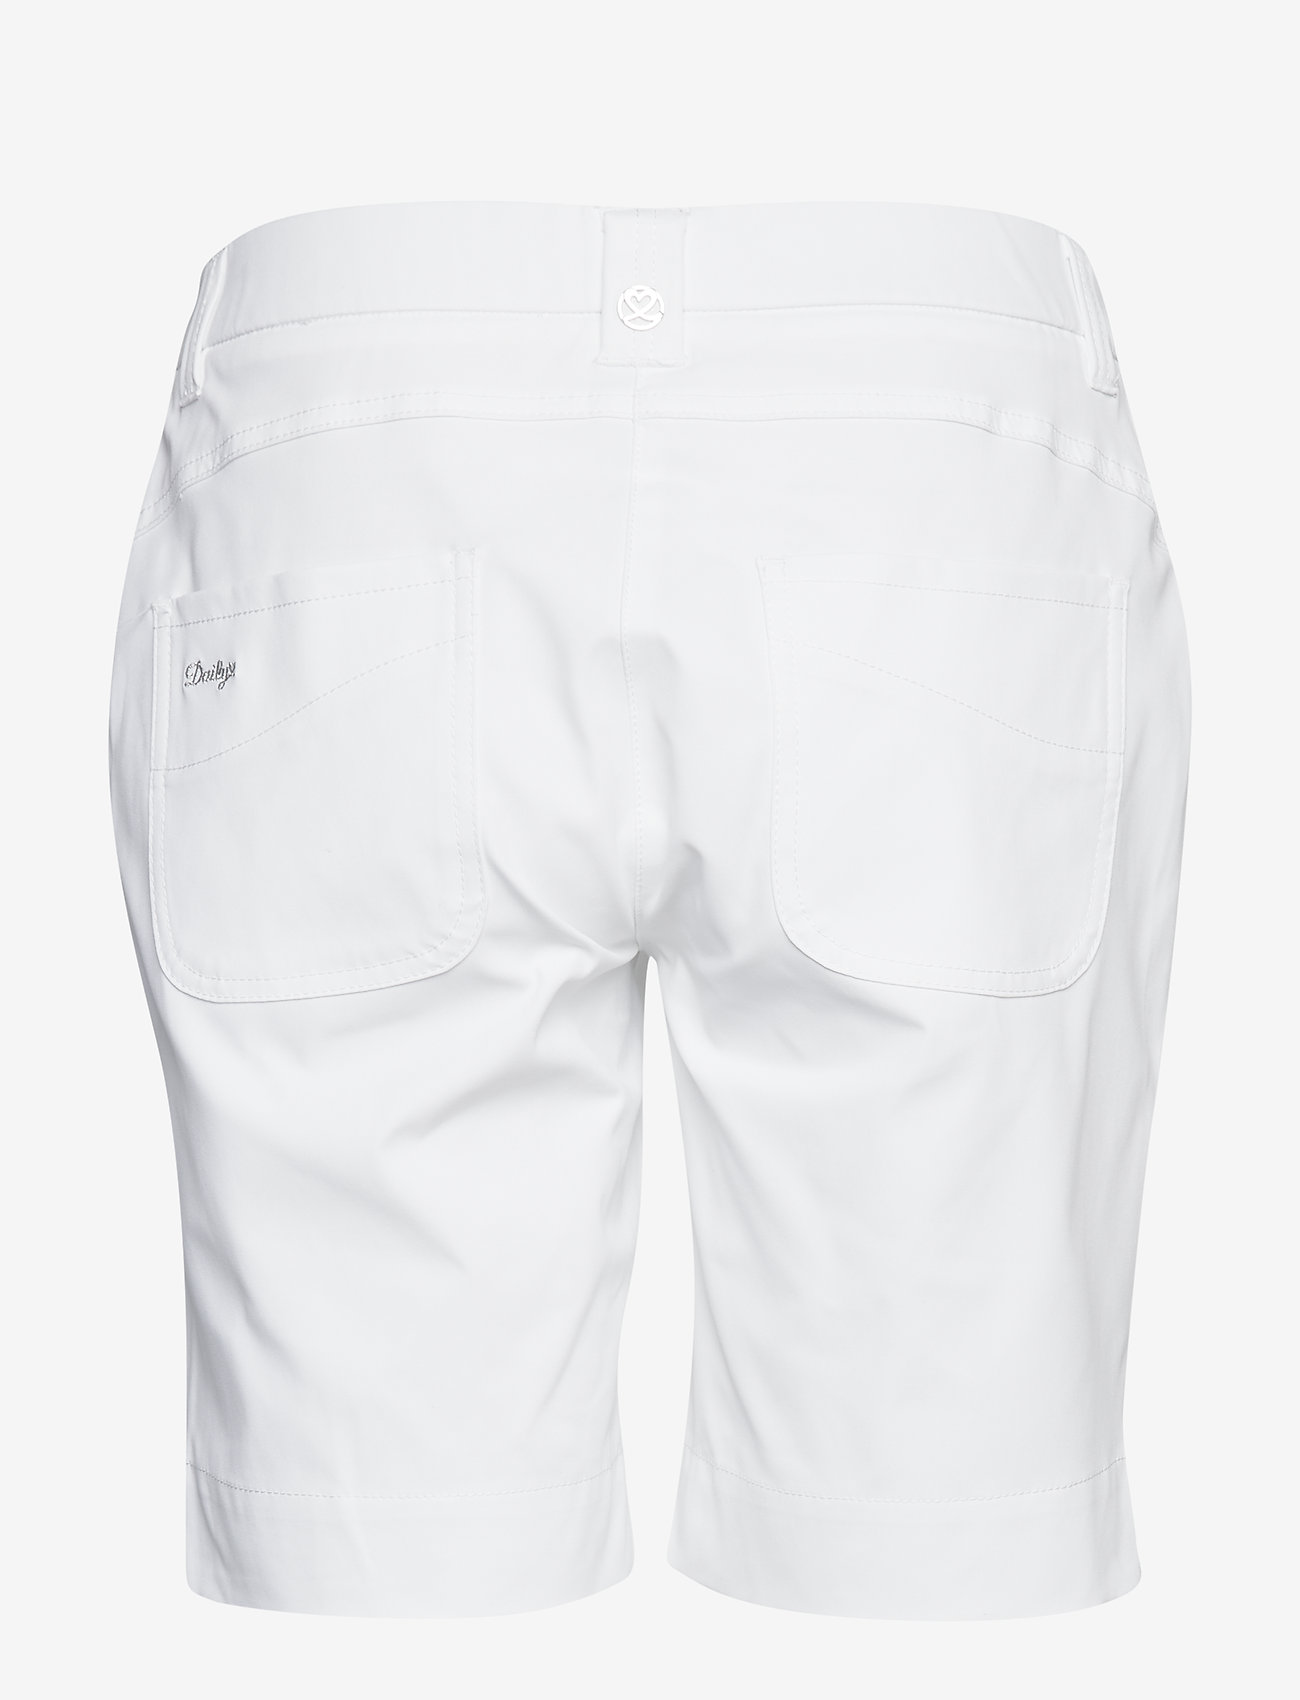 Lyric Shorts 48 Cm (White) (49.98 €) - Daily Sports x6DBE